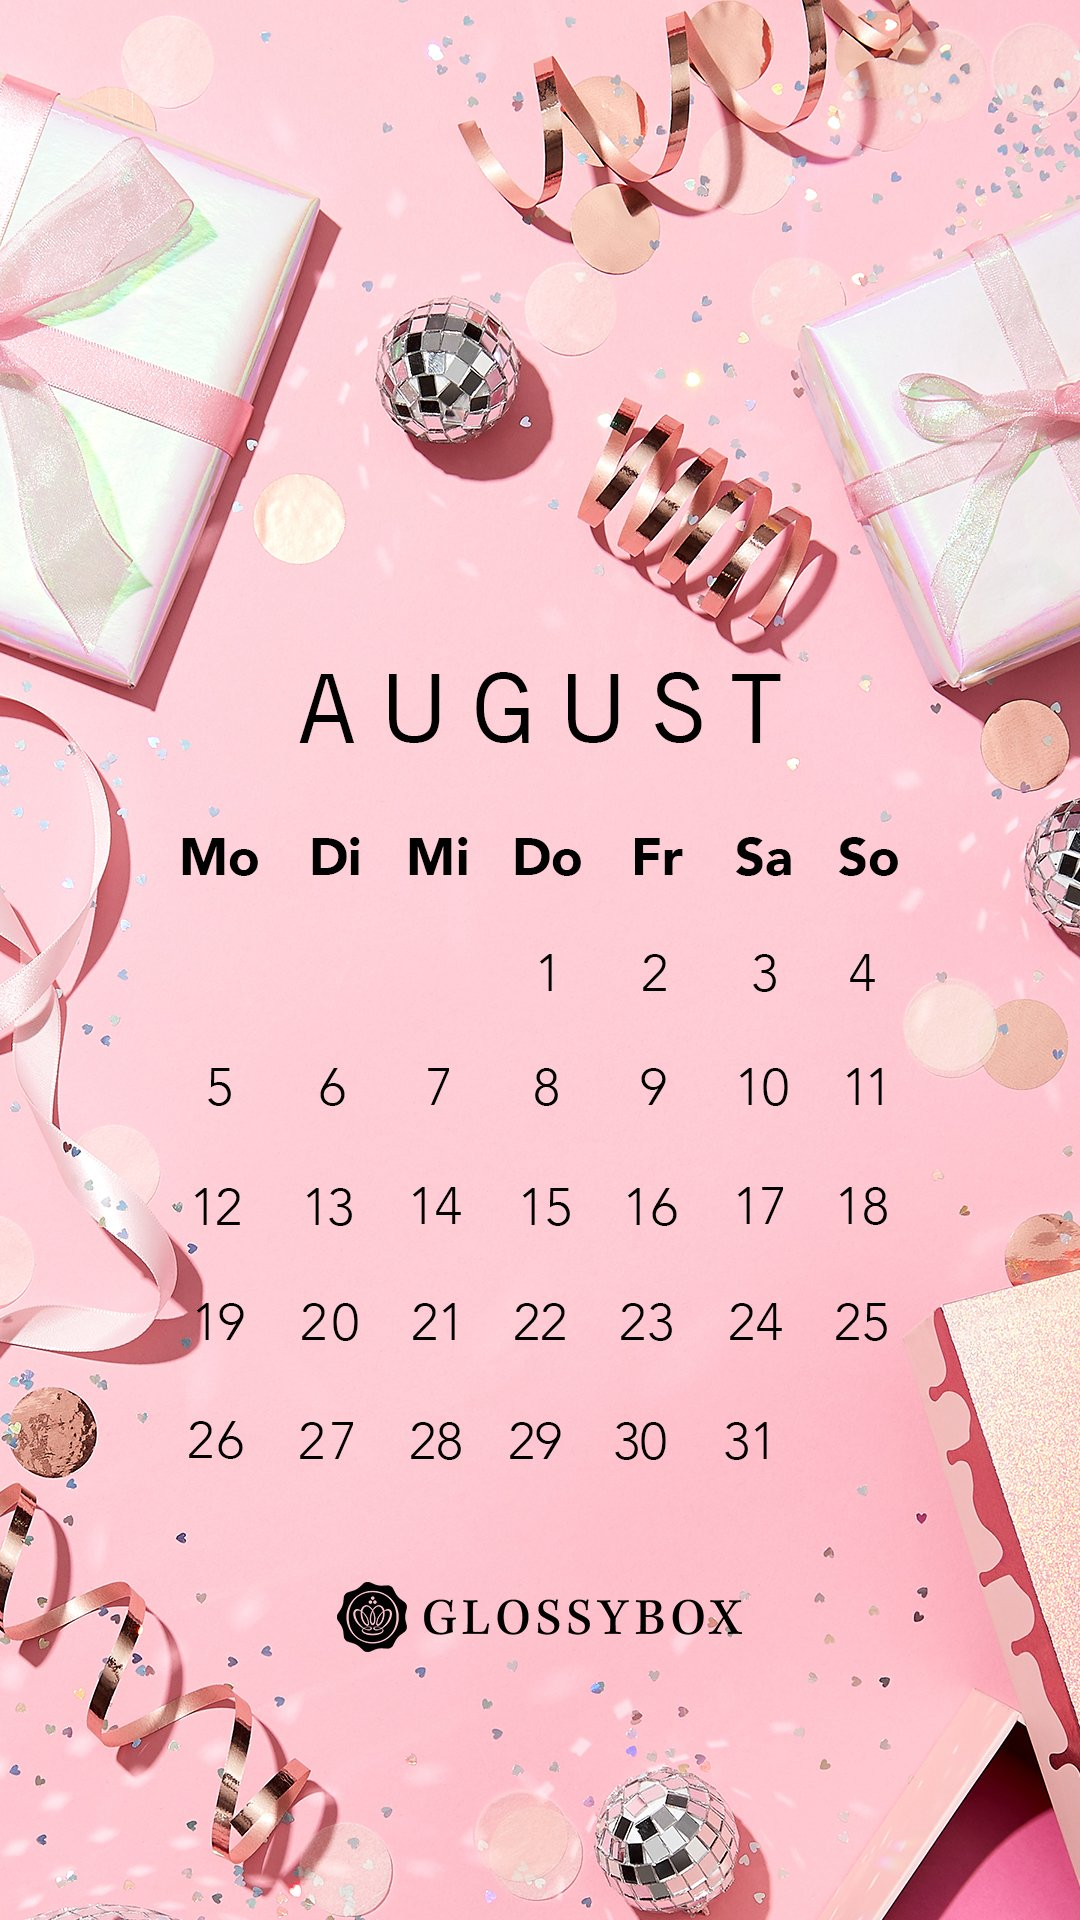 GLOSSY-Wallpaper-August-2019-Birthday